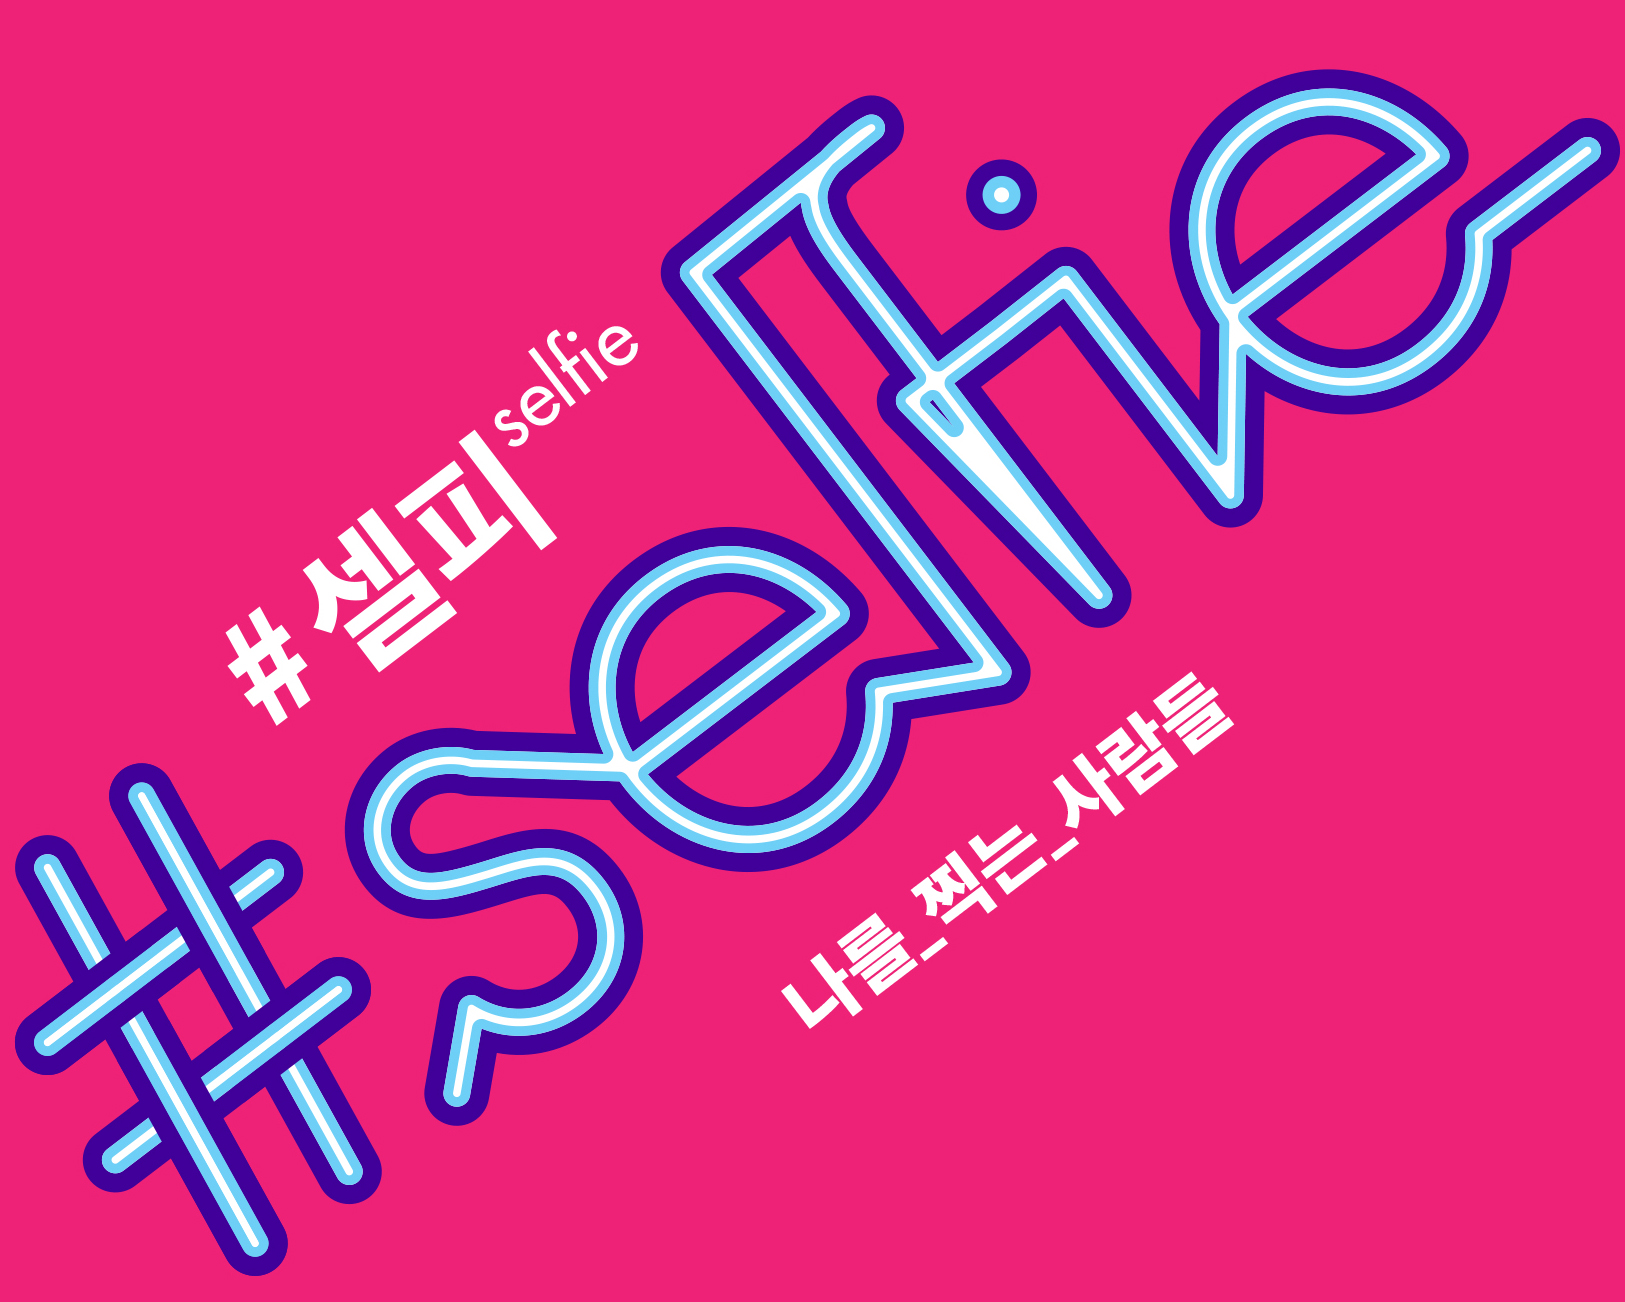 [Seoul Foundation for Arts and Culture] Selfie People Taking Their Own Pictures